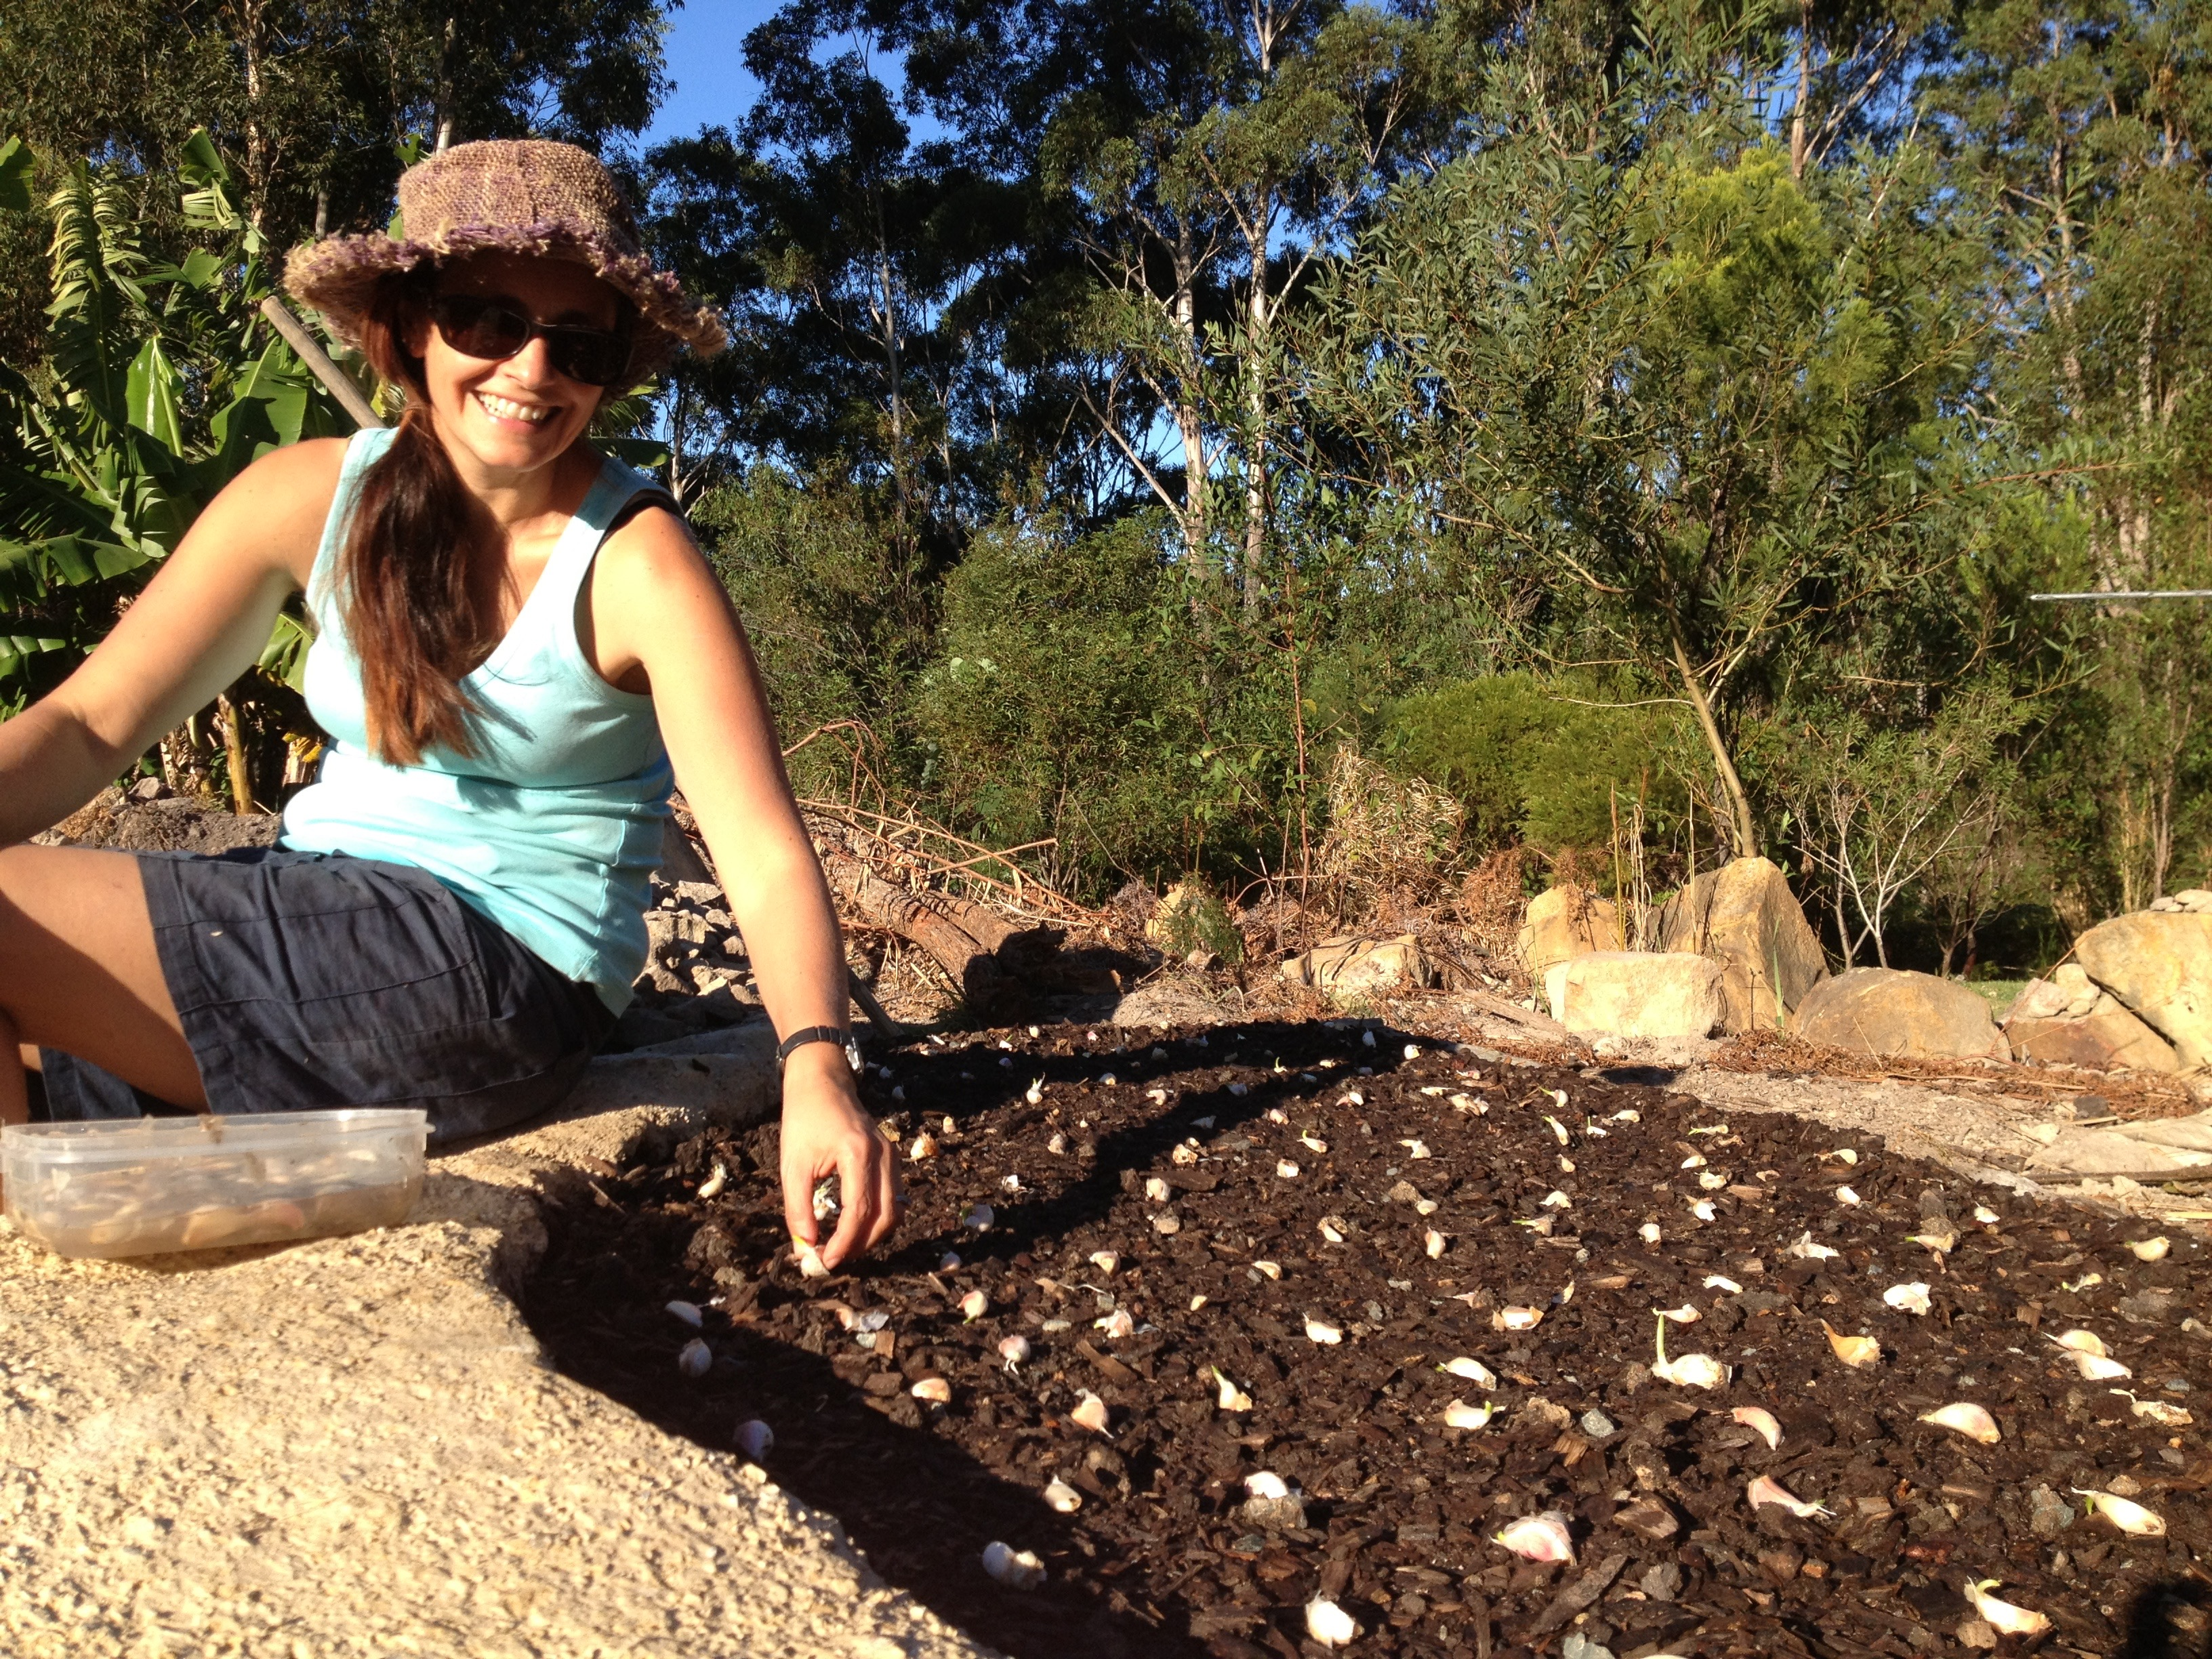 Megan Cooke planting cloves of Garlic at Garden to Table Permaculture